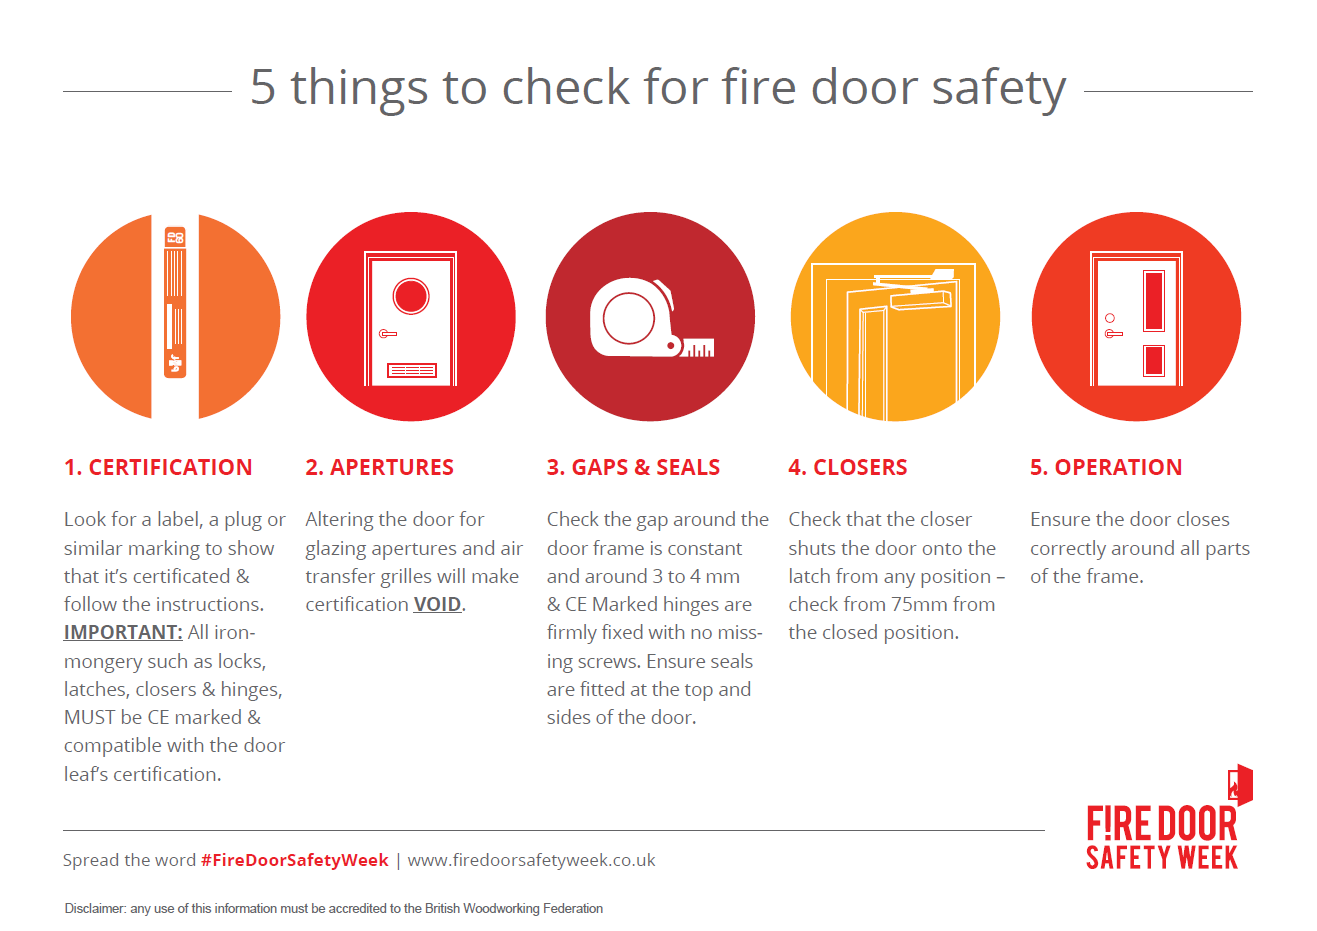 5 step checklist for fire door safety